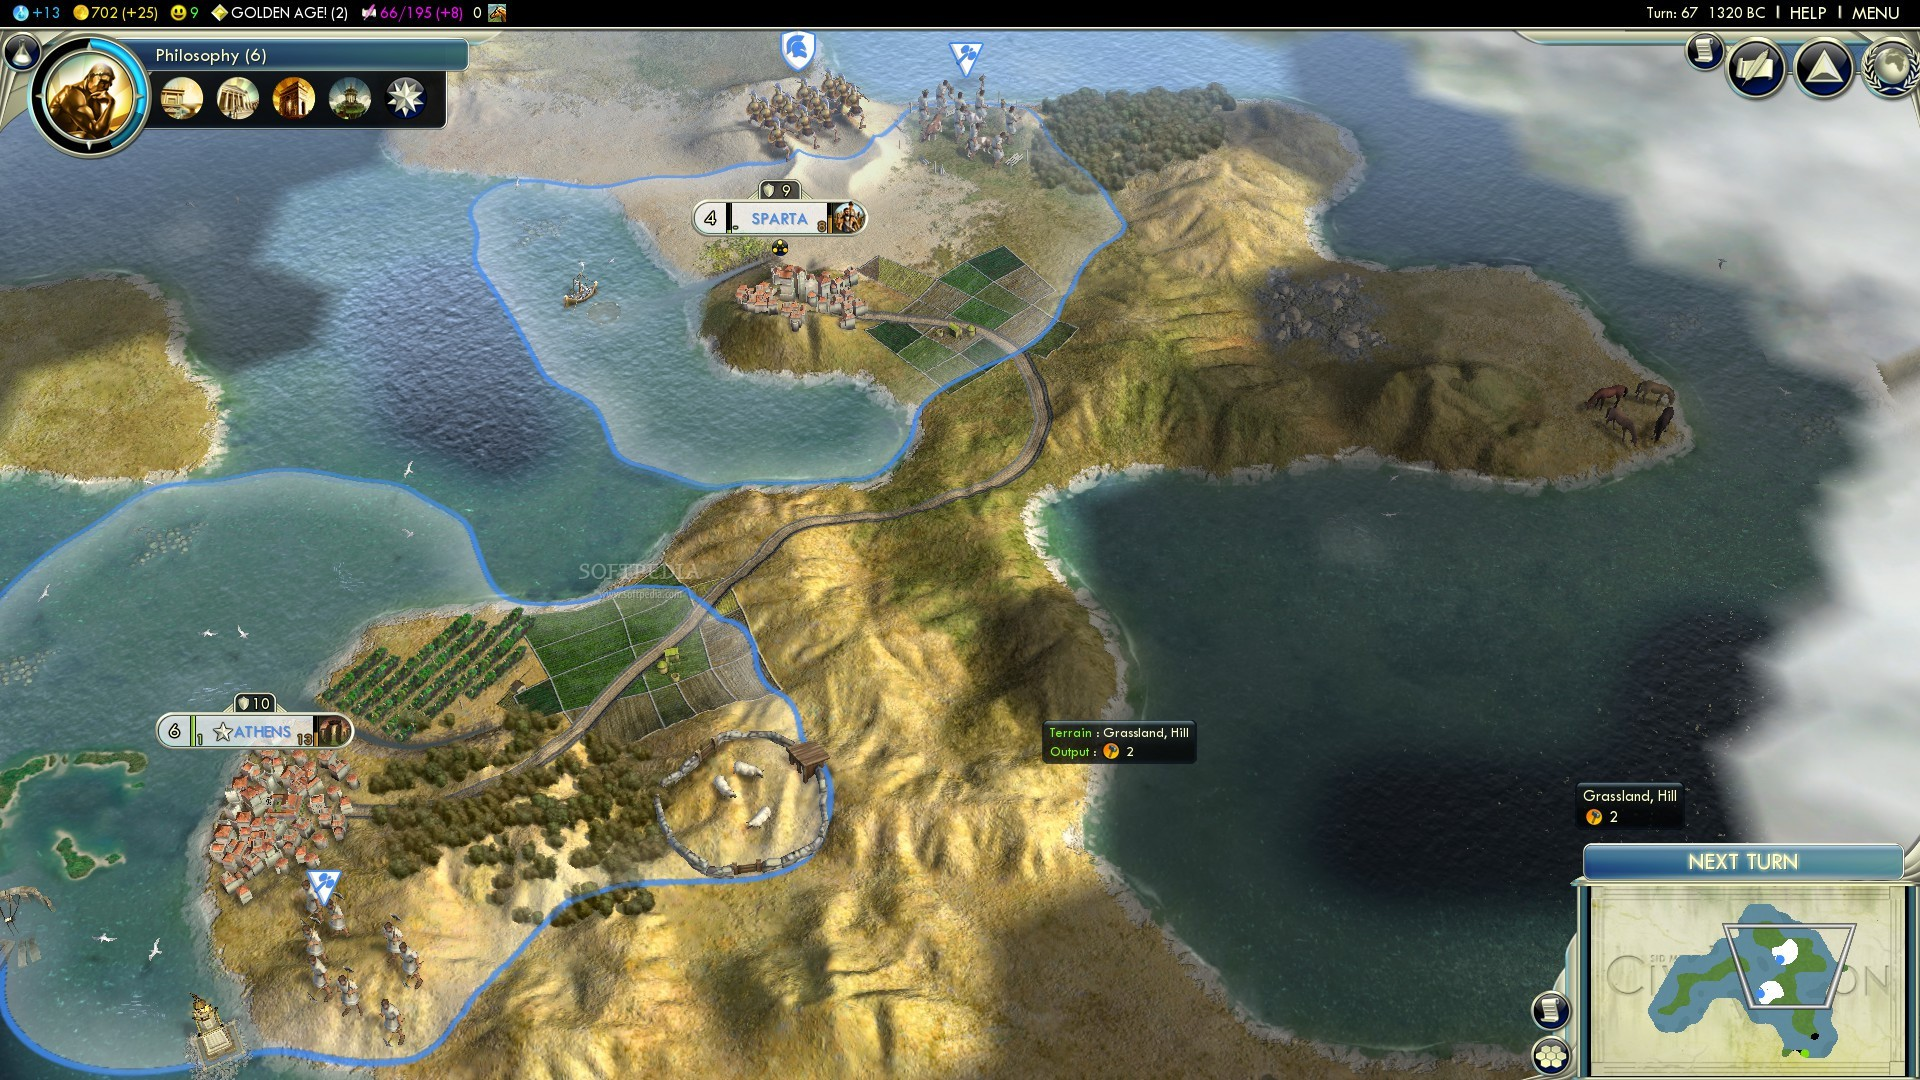 Civ 6 Not Launching Linux